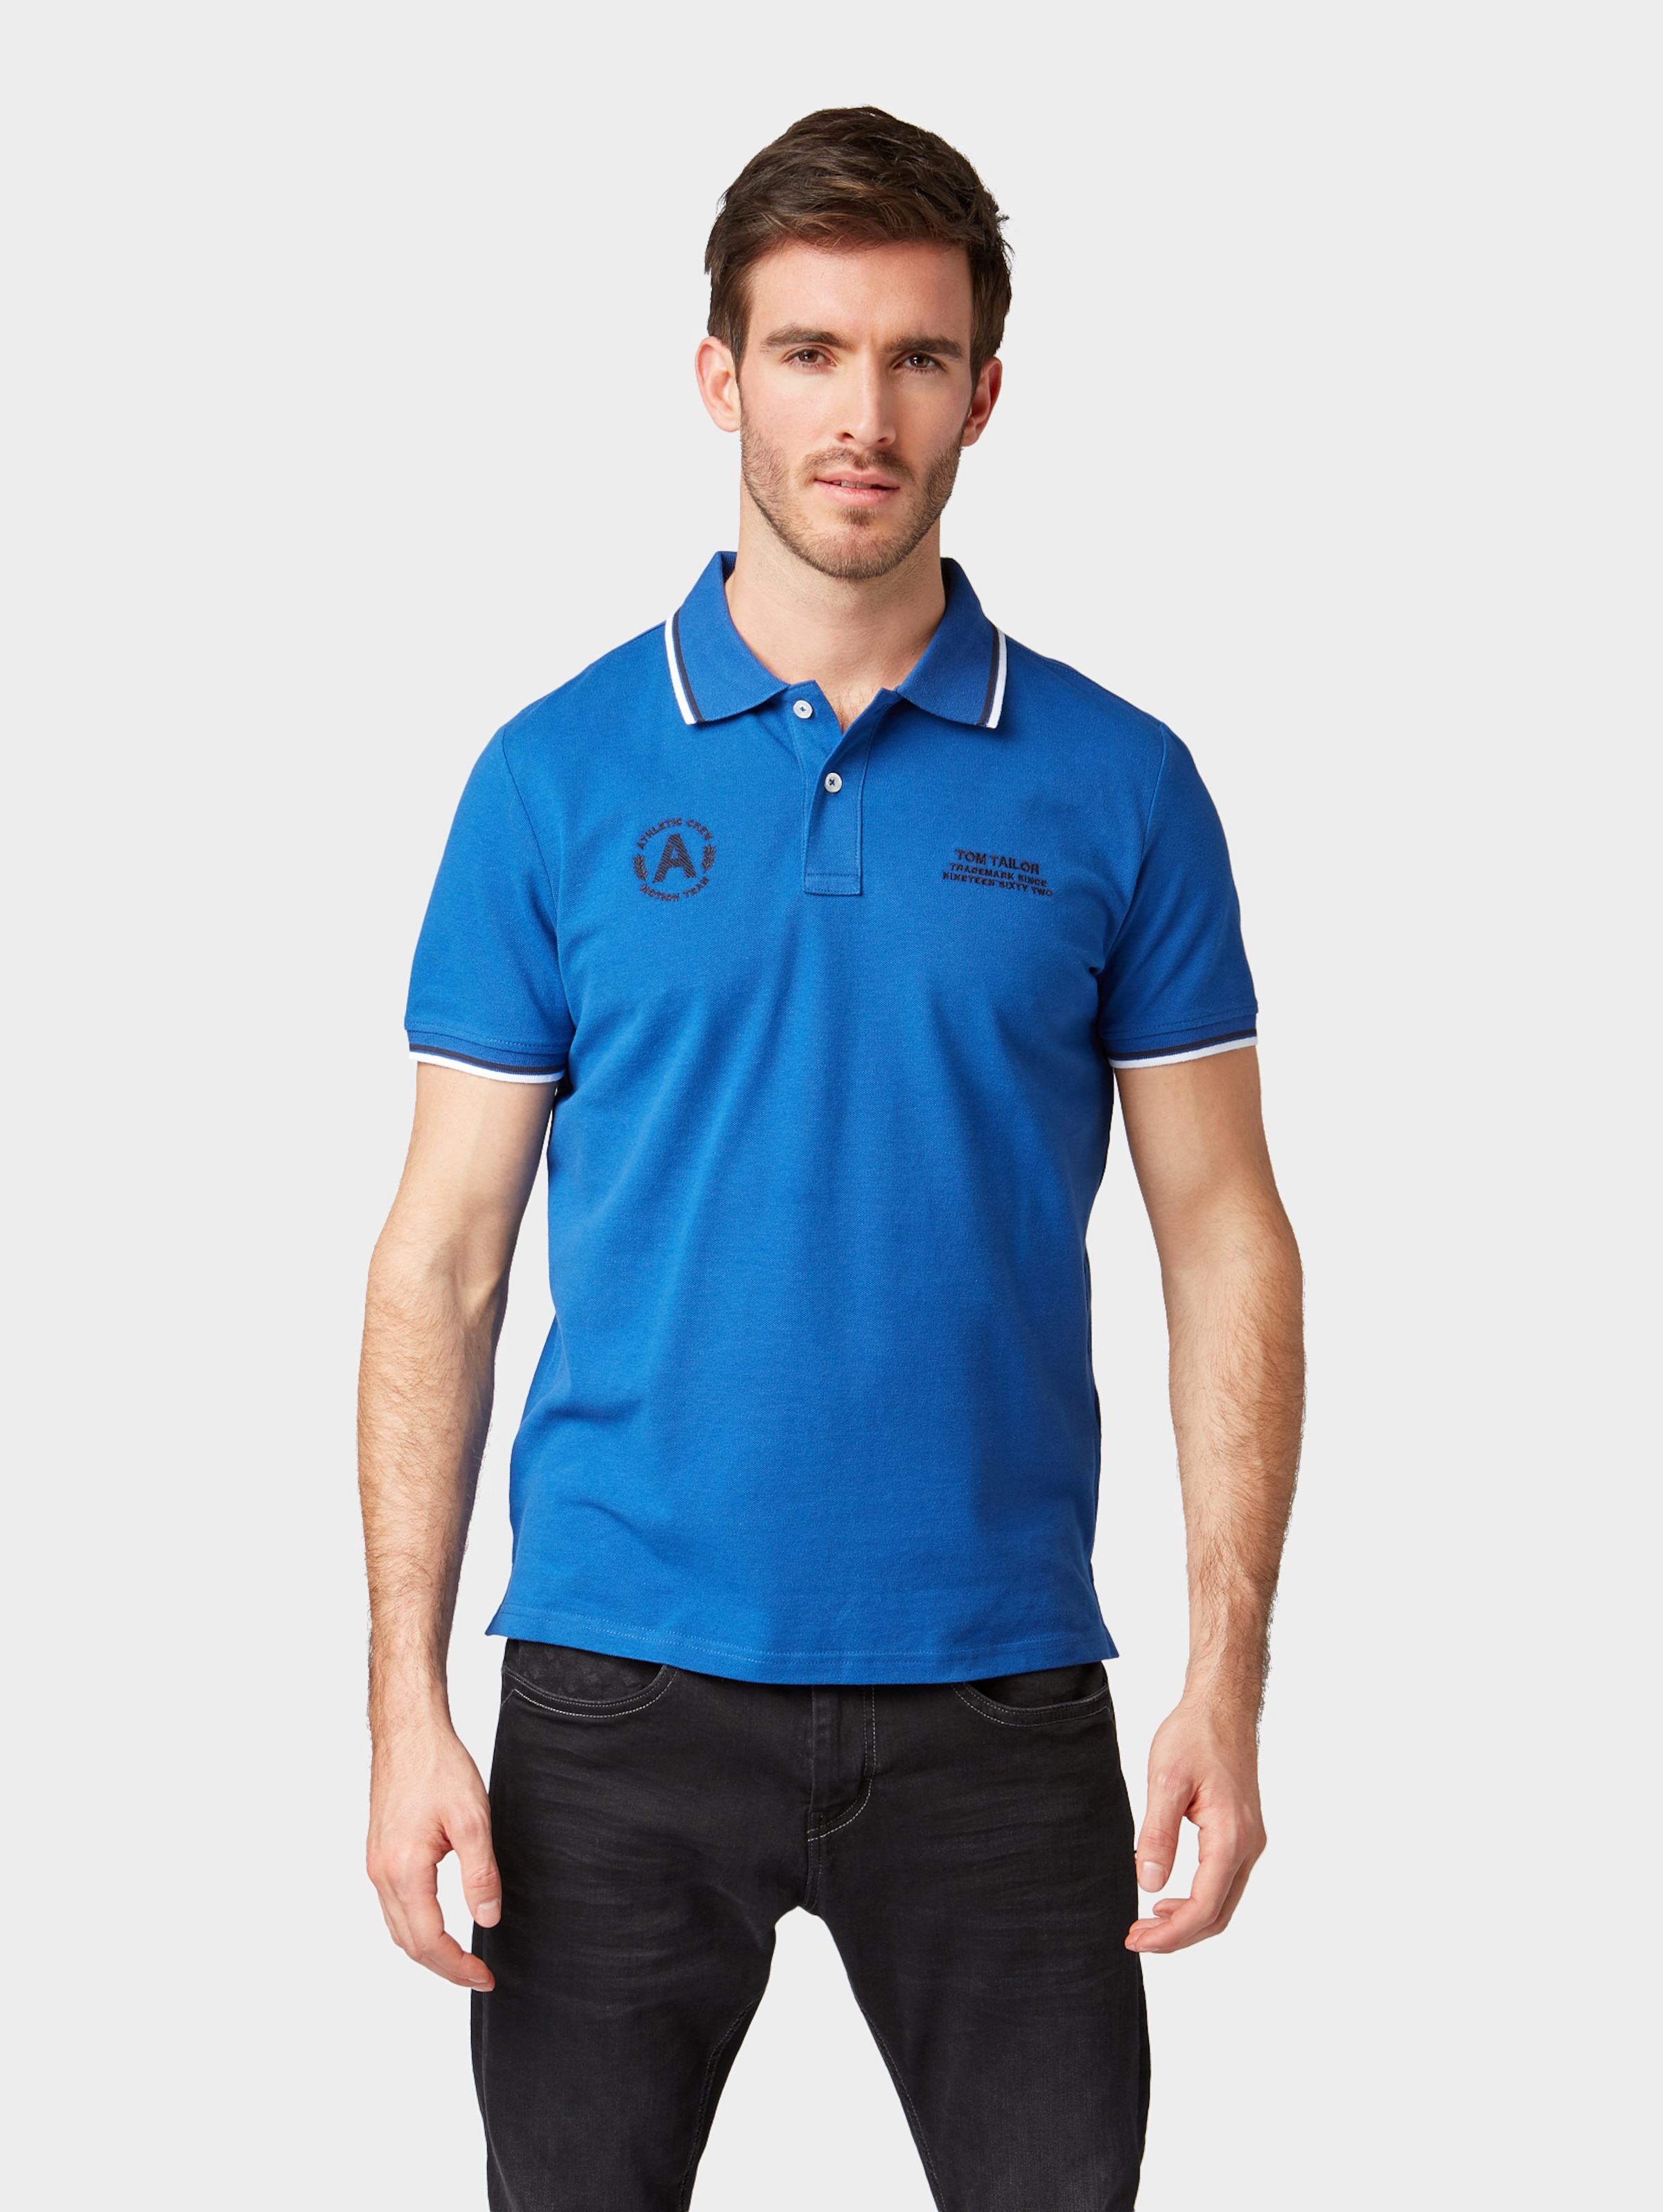 In Poloshirt Tailor Tom Tailor Himmelblau Tom CxrBode